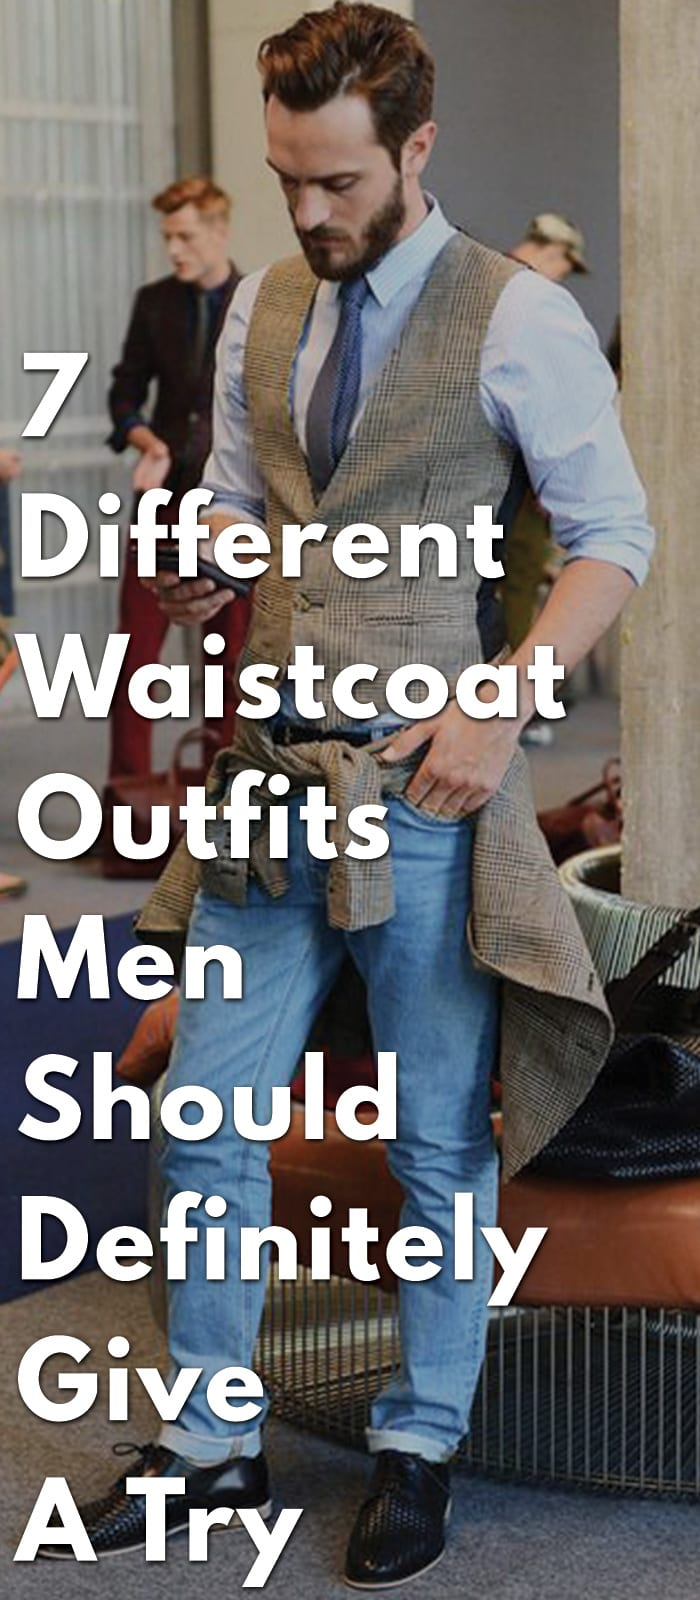 7-Different-Waistcoat-Outfits-Men-Should-Definitely-Give-A-Try